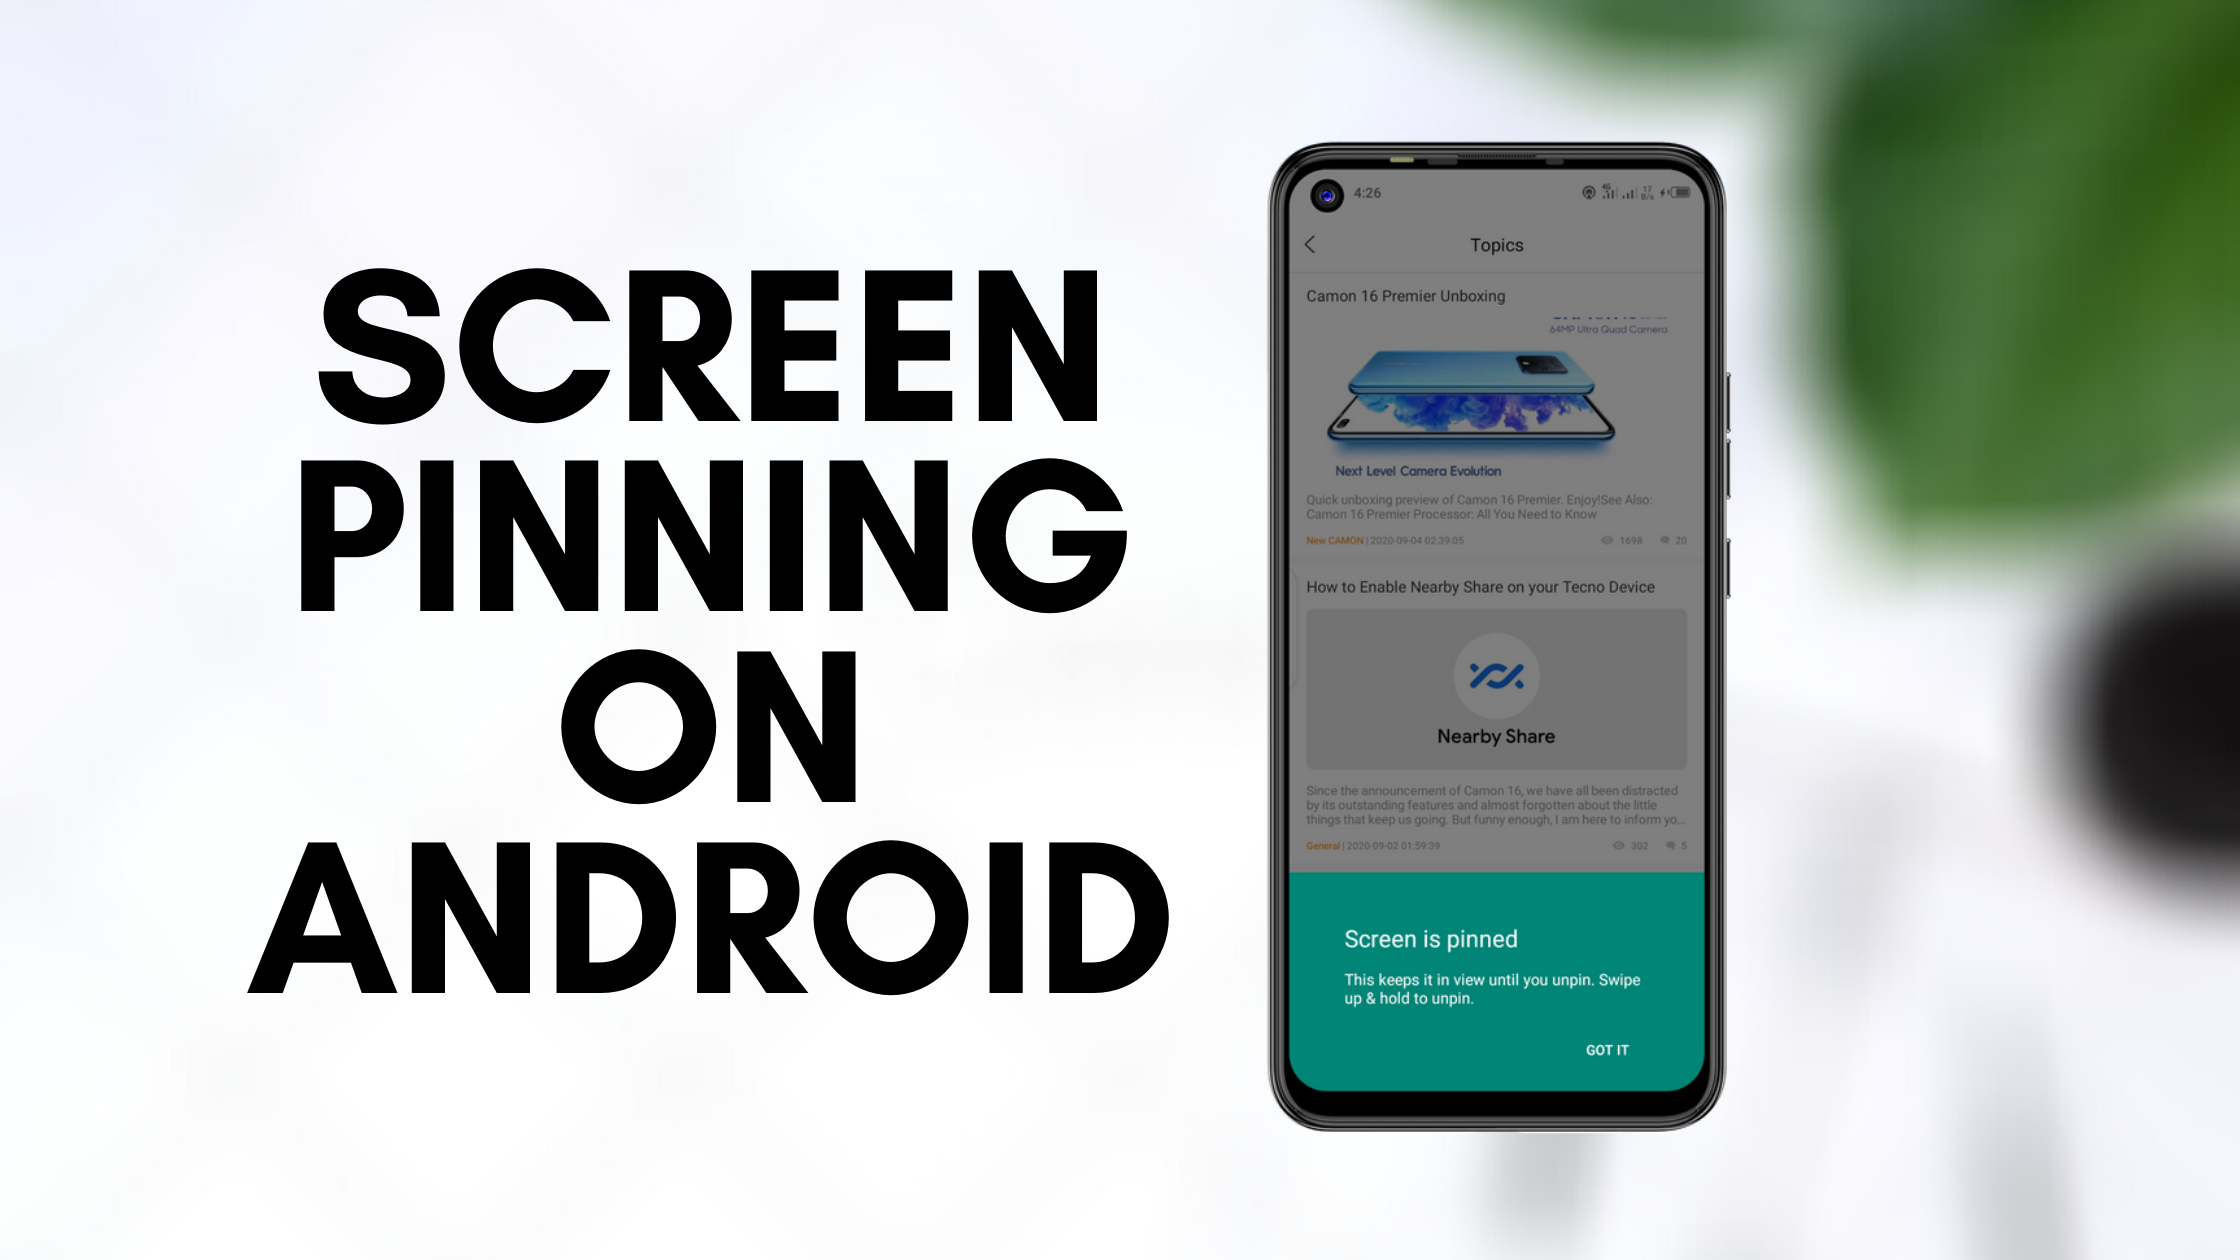 Screen pinning on Android (1).png